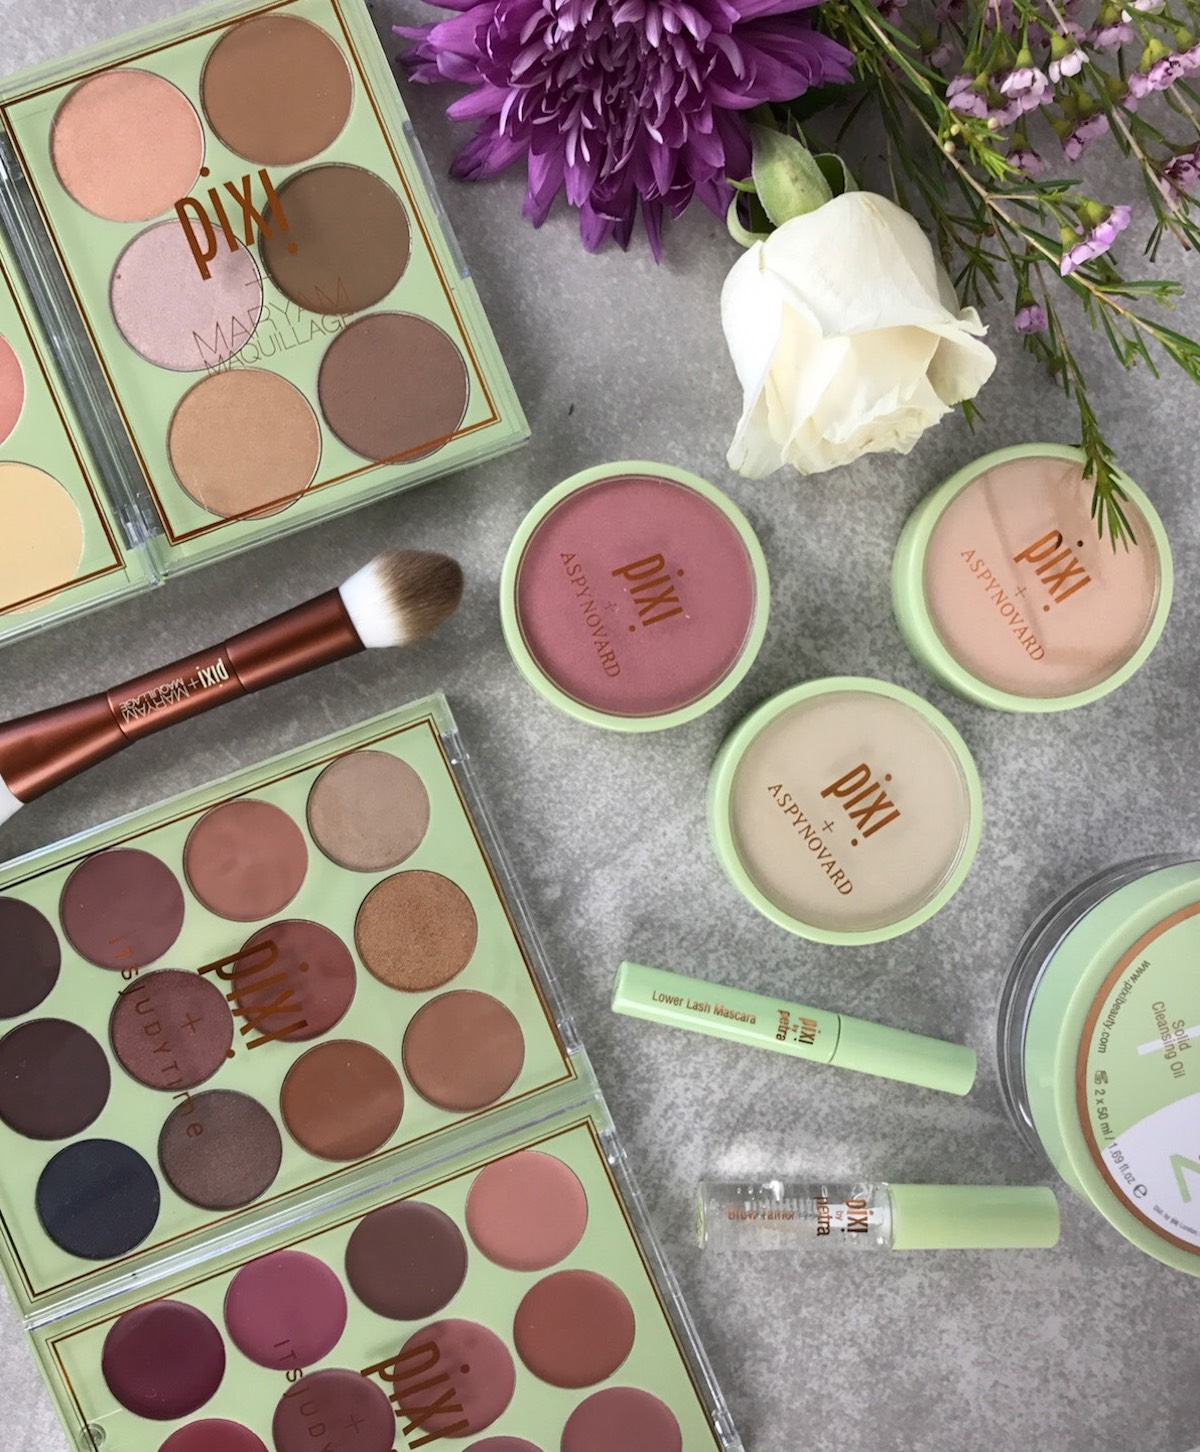 This is a close up of the gorgeous #PixiPretties strobe & highlight + strobe & bronze palettes from Pixi Beauty.